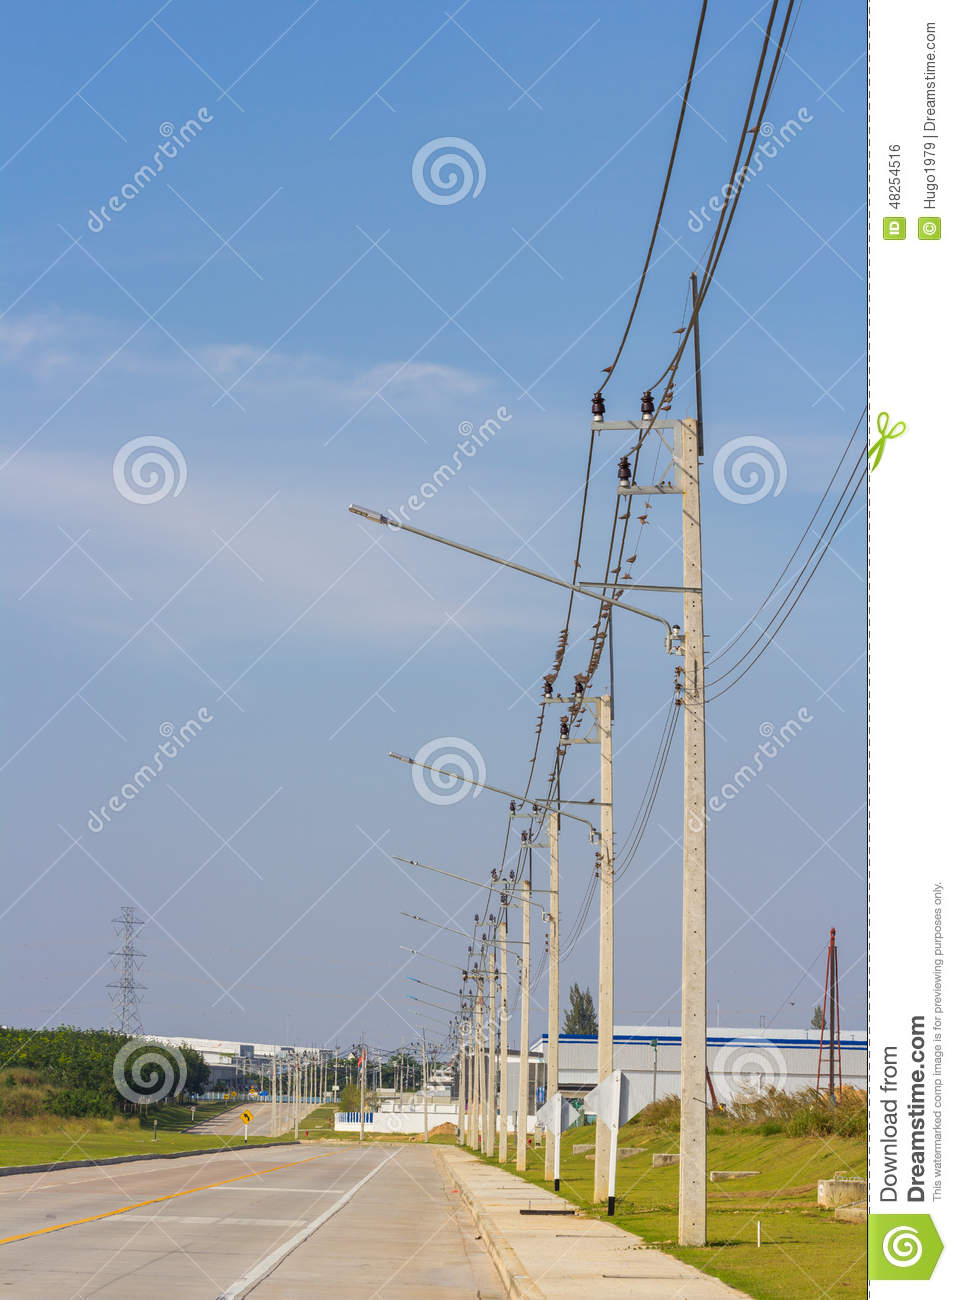 electrical post with power cable and street light stock photo